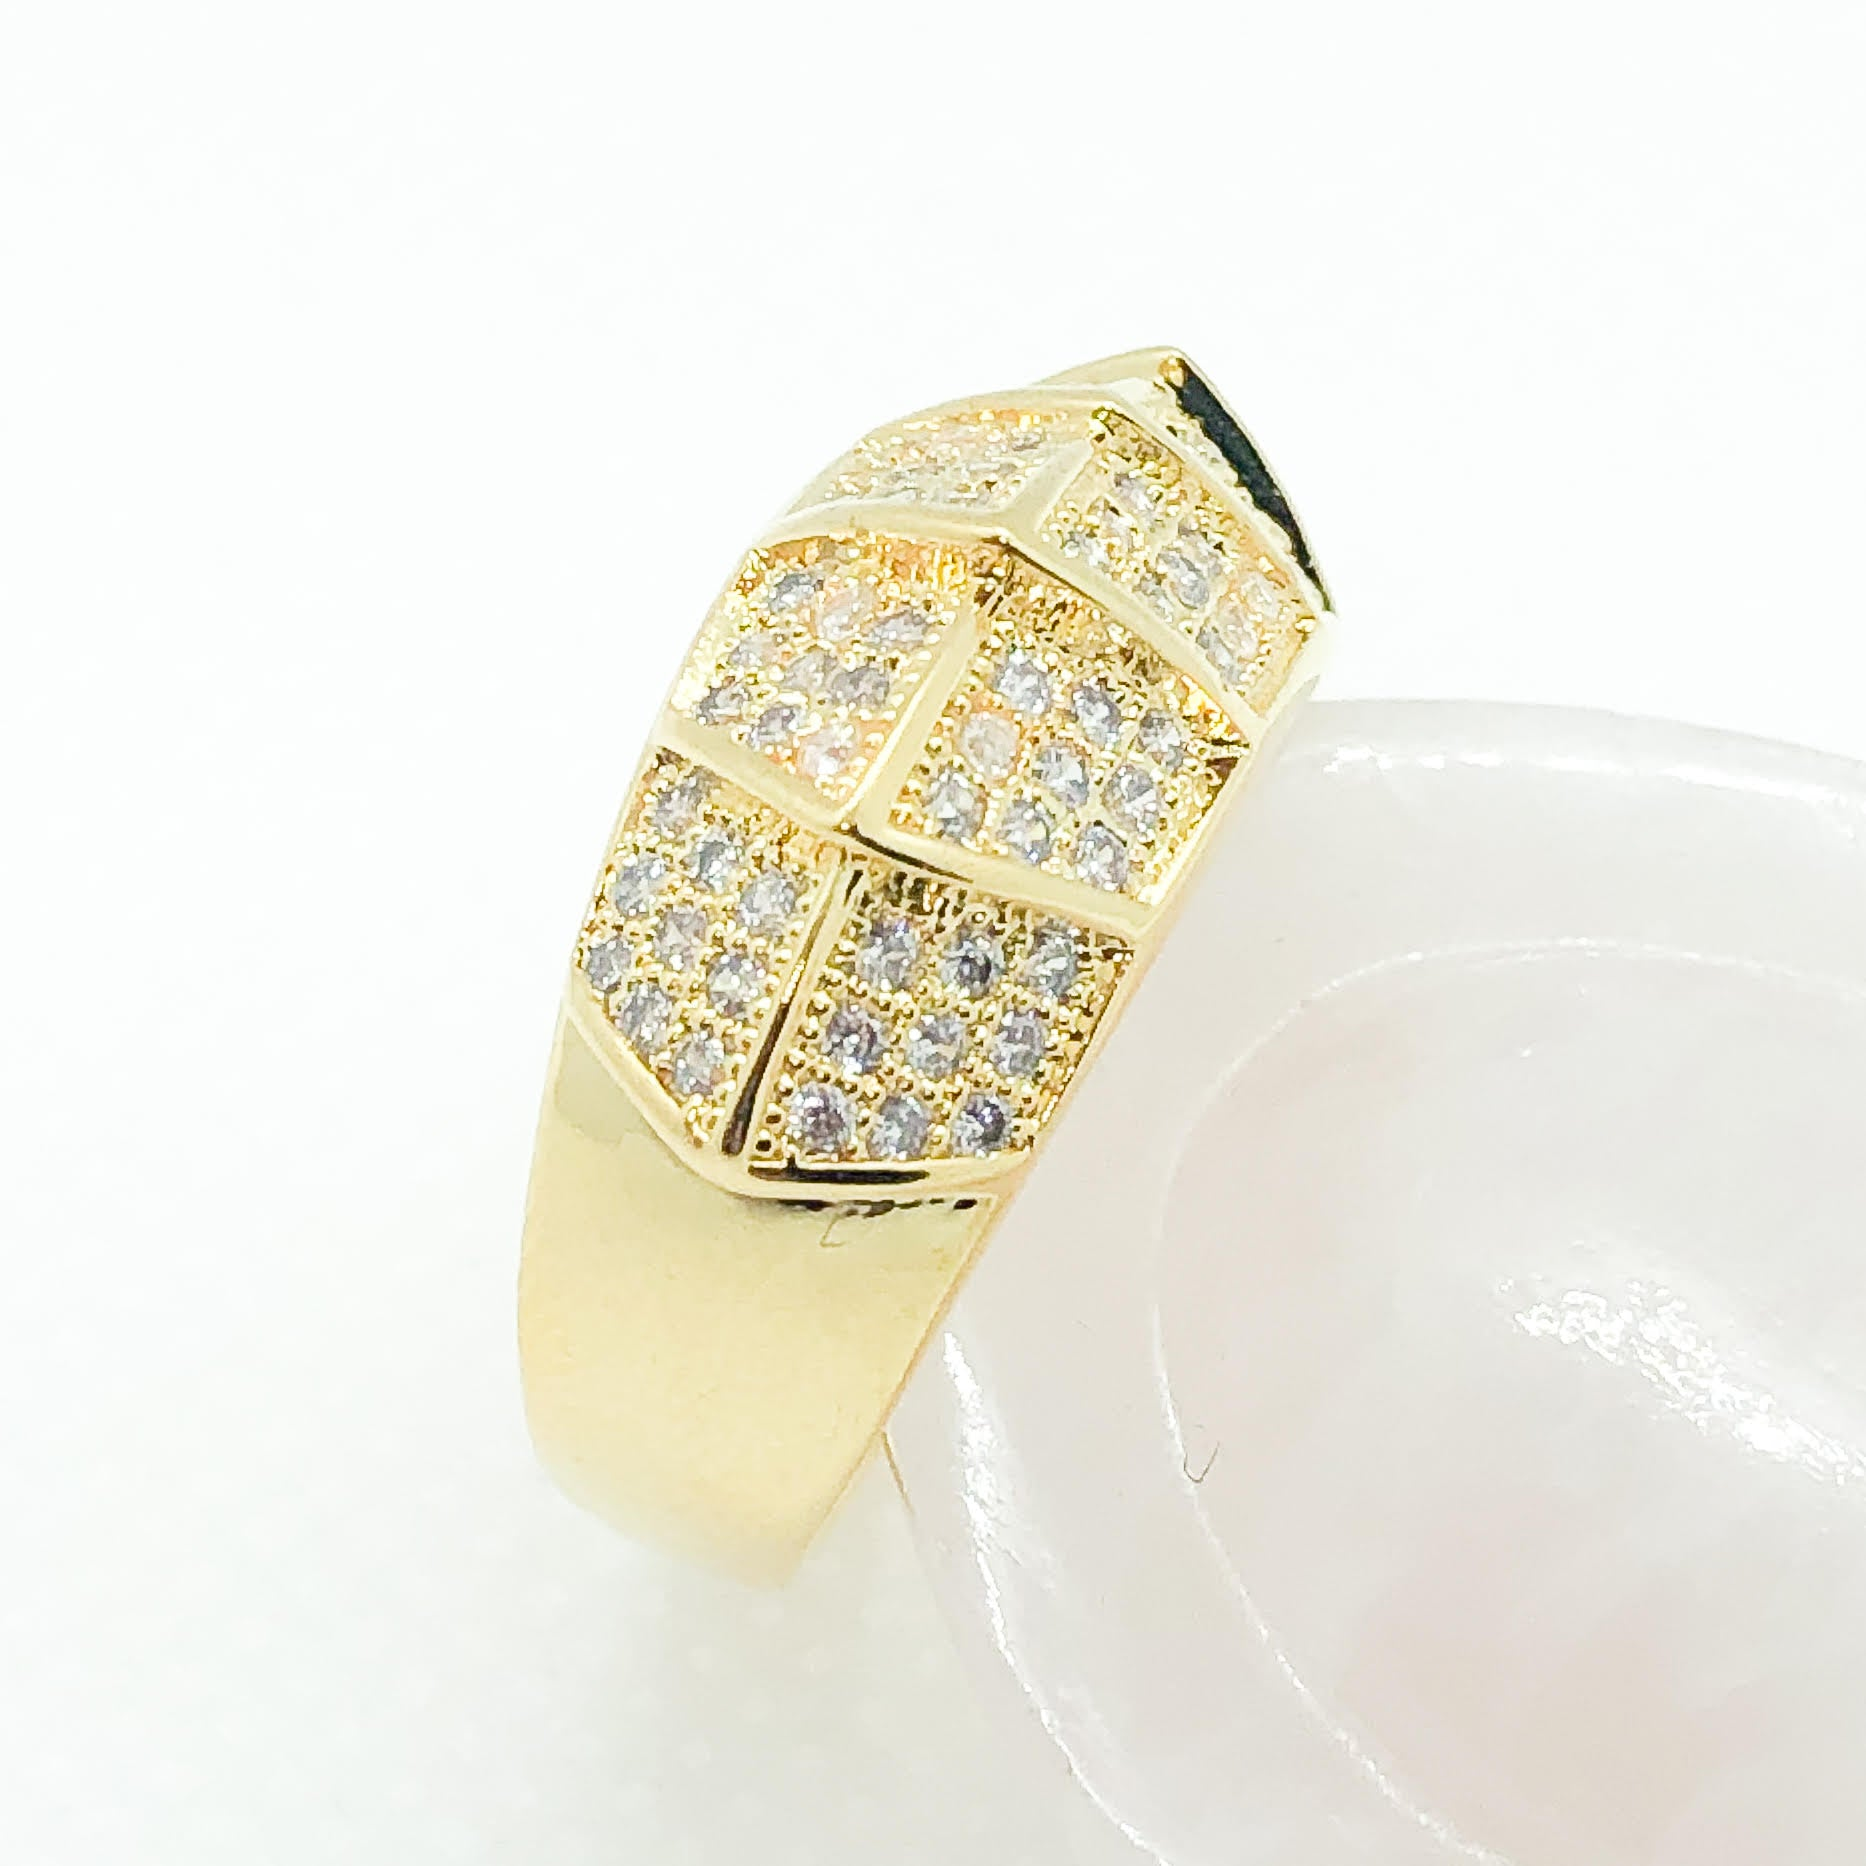 ID:R6439 Women 18K Yellow Gold GF Fashion Jewelry Promise Gift Unique Clear Gemstones Cocktail Ring